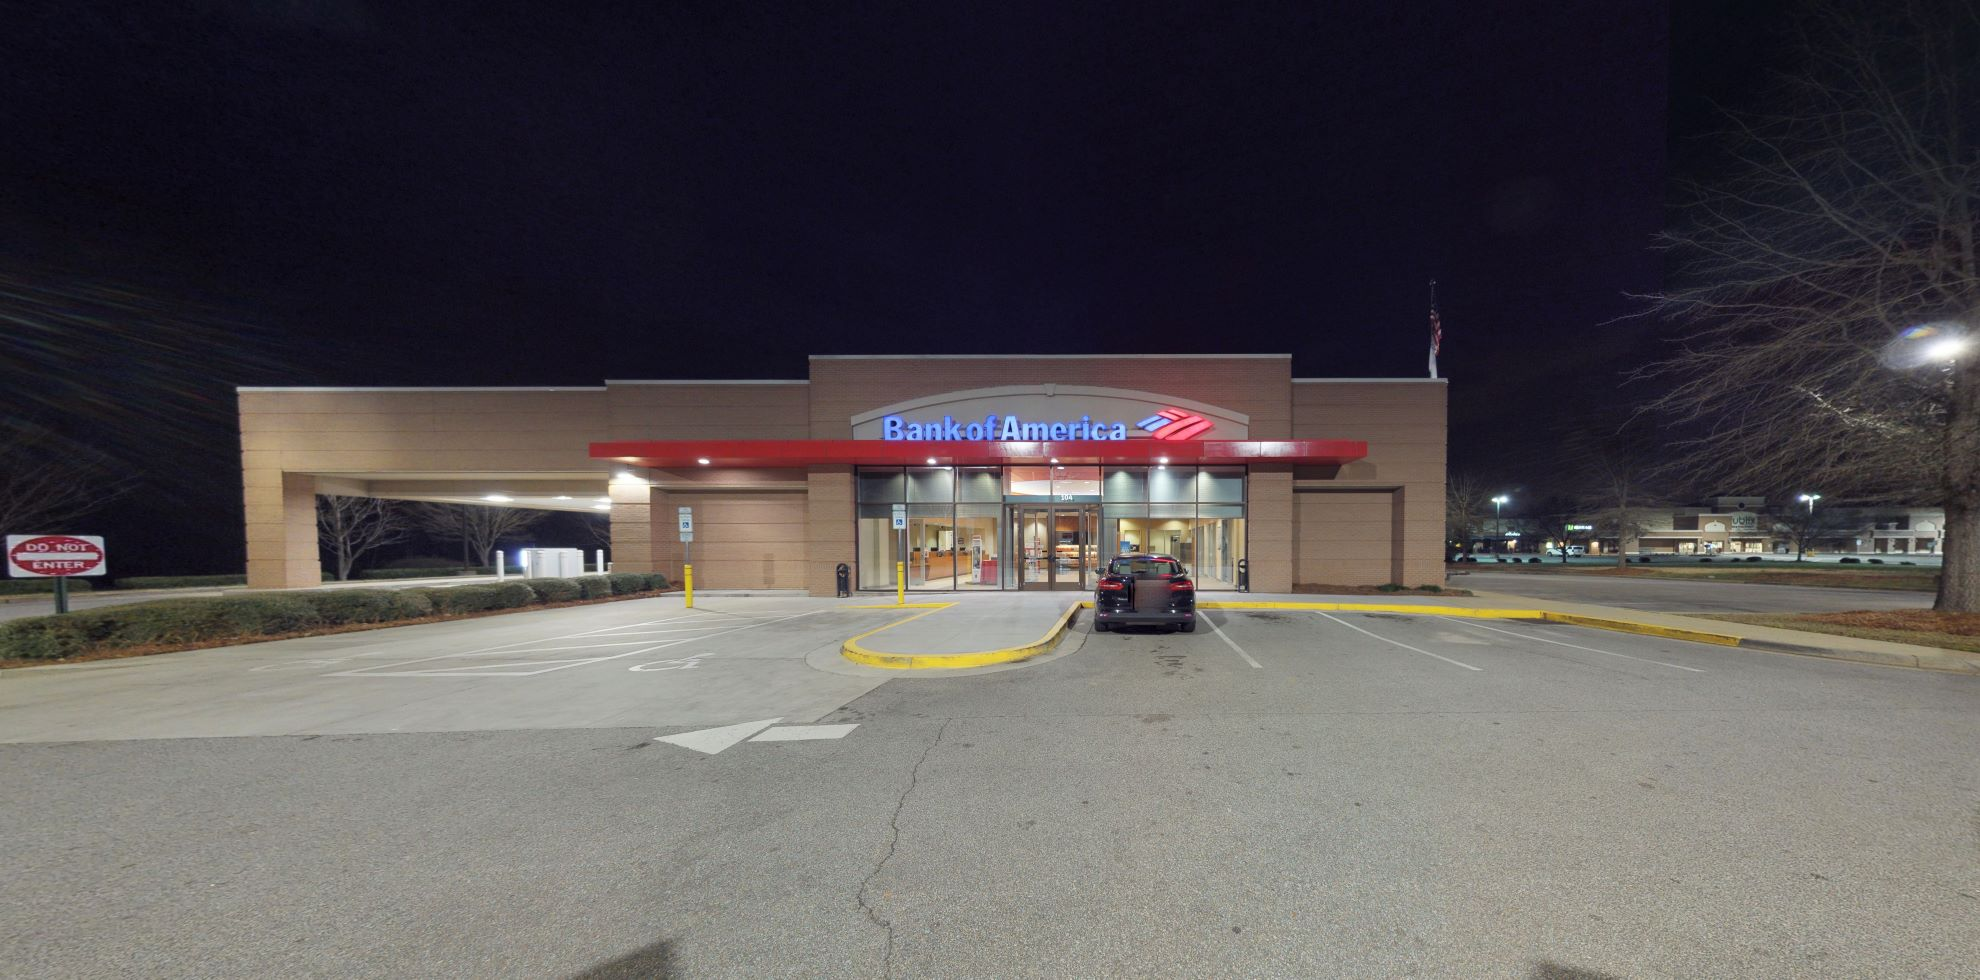 Bank of America financial center with drive-thru ATM   104 Regency Dr, Columbia, SC 29212